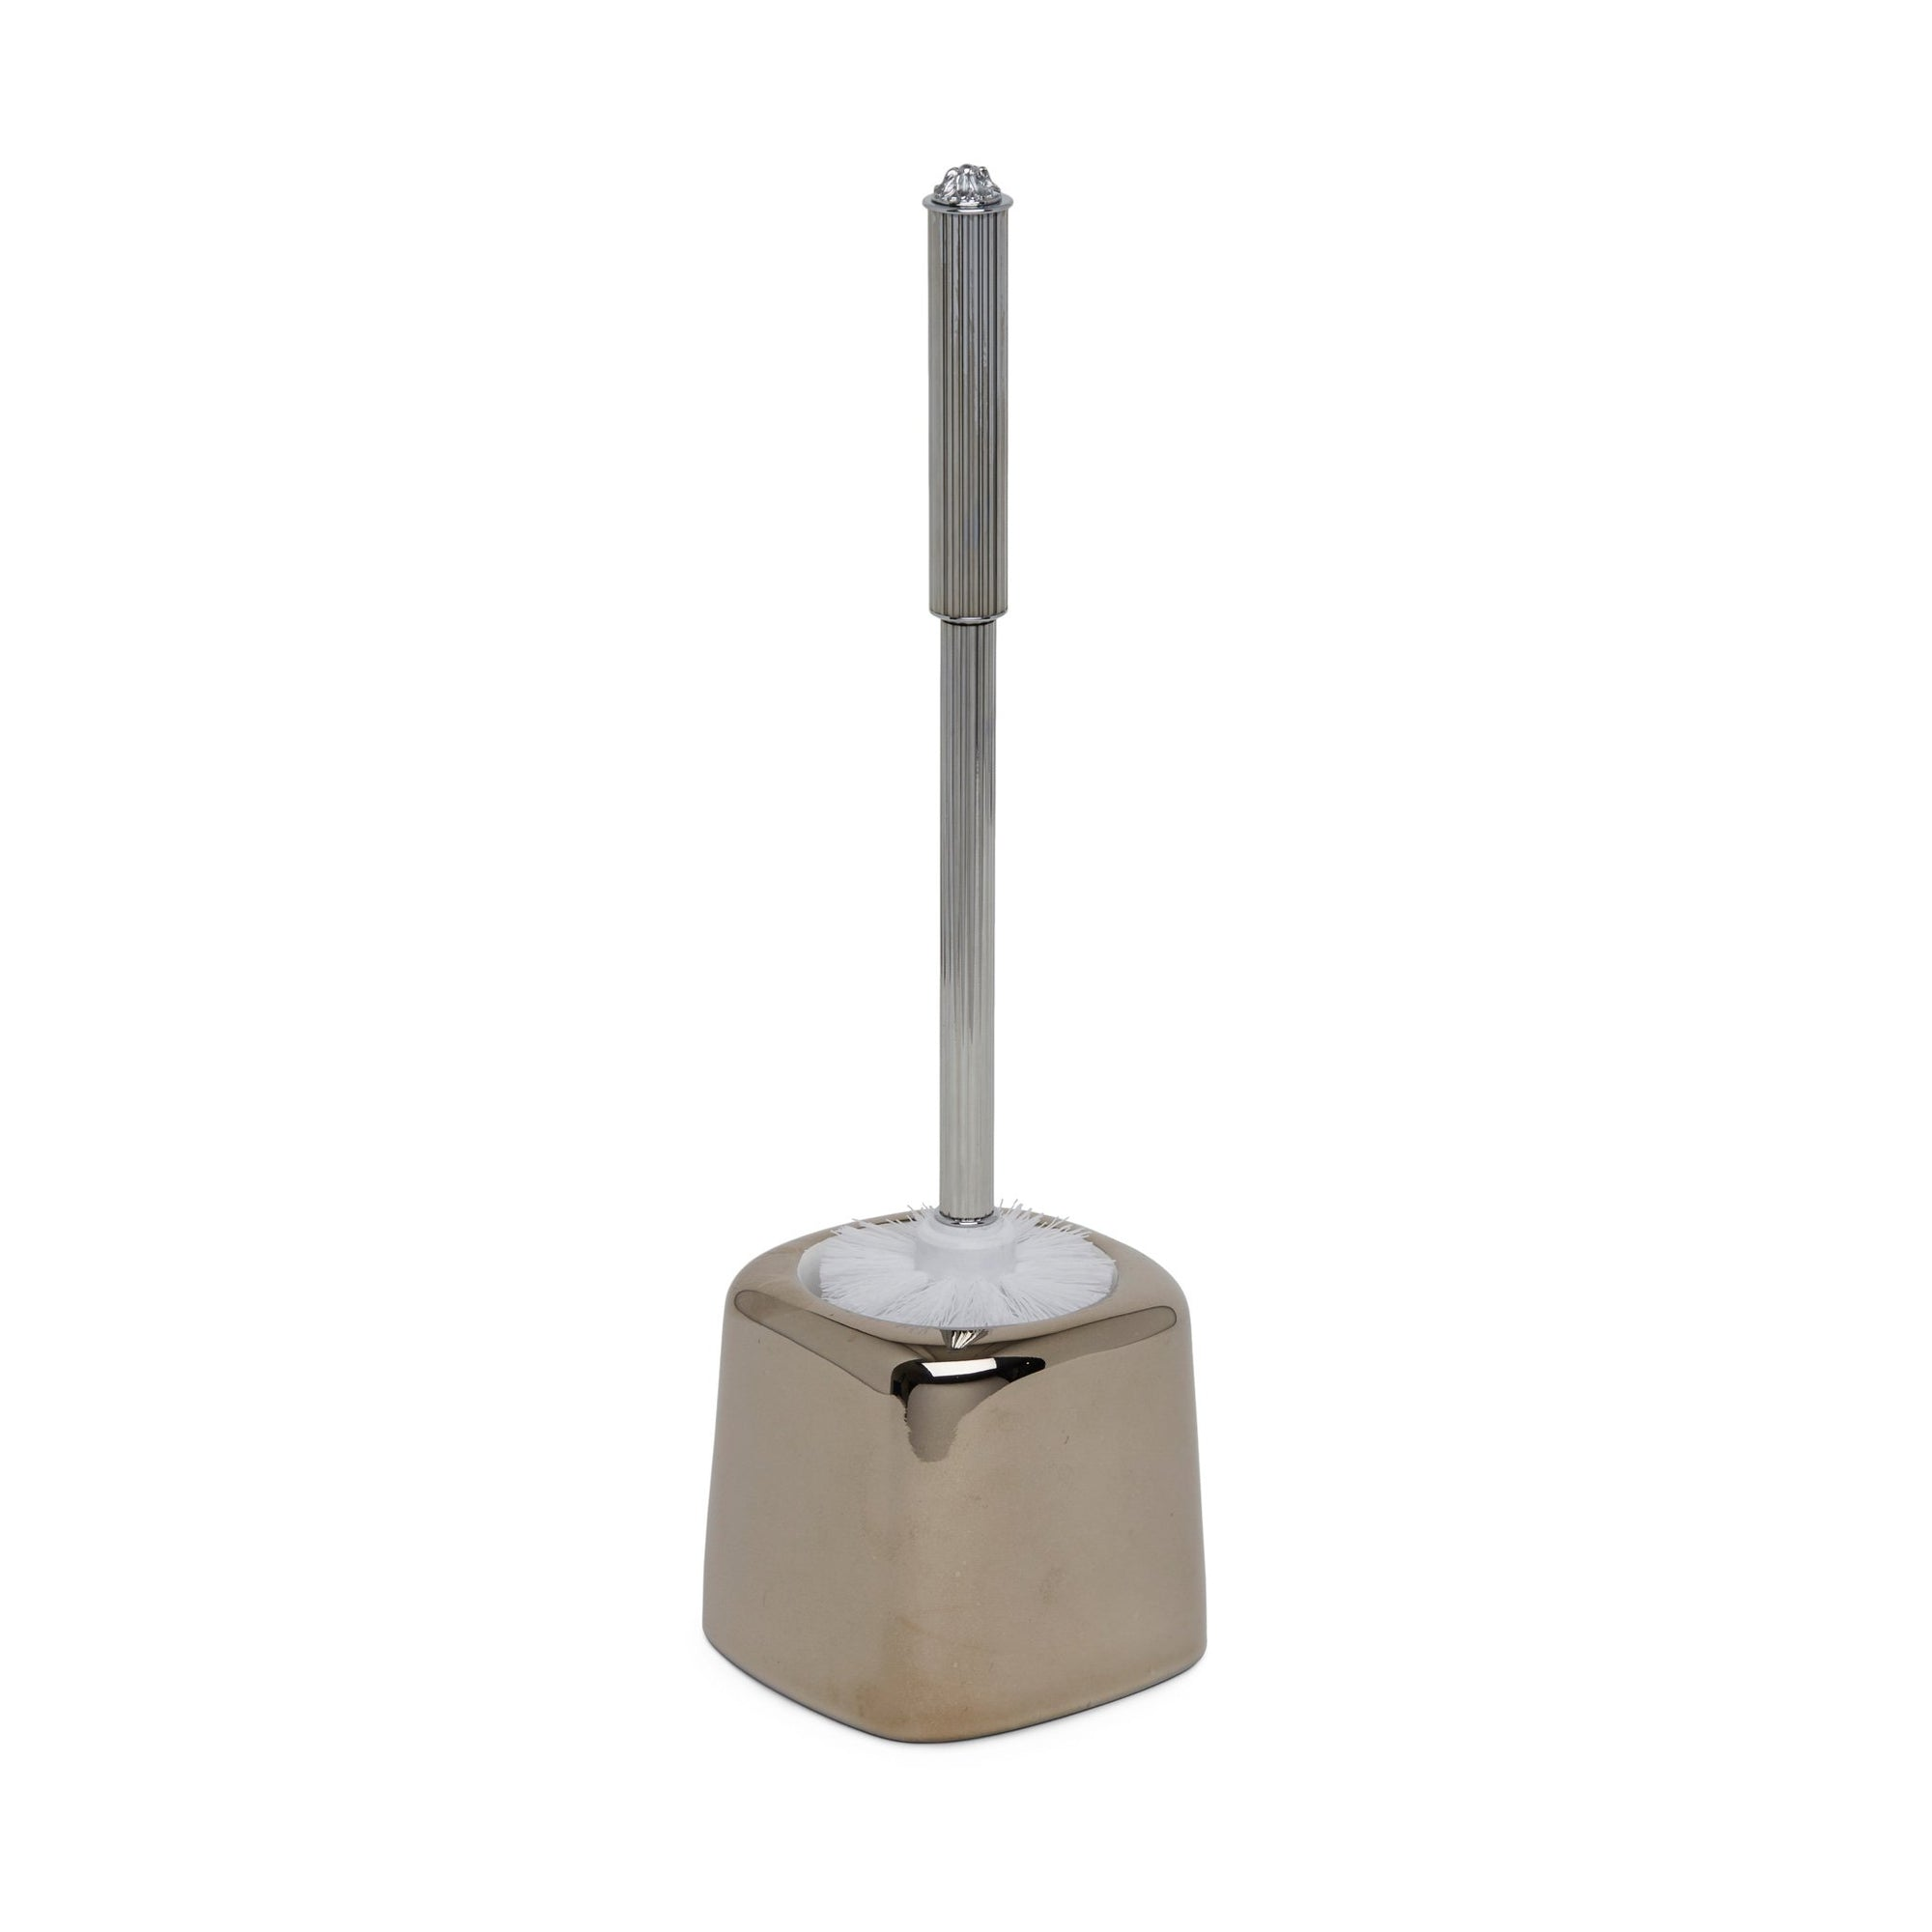 3395-17HP Sherle Wagner International Toilet Ceramic Brush Holder with Highly Polished Platinum finish